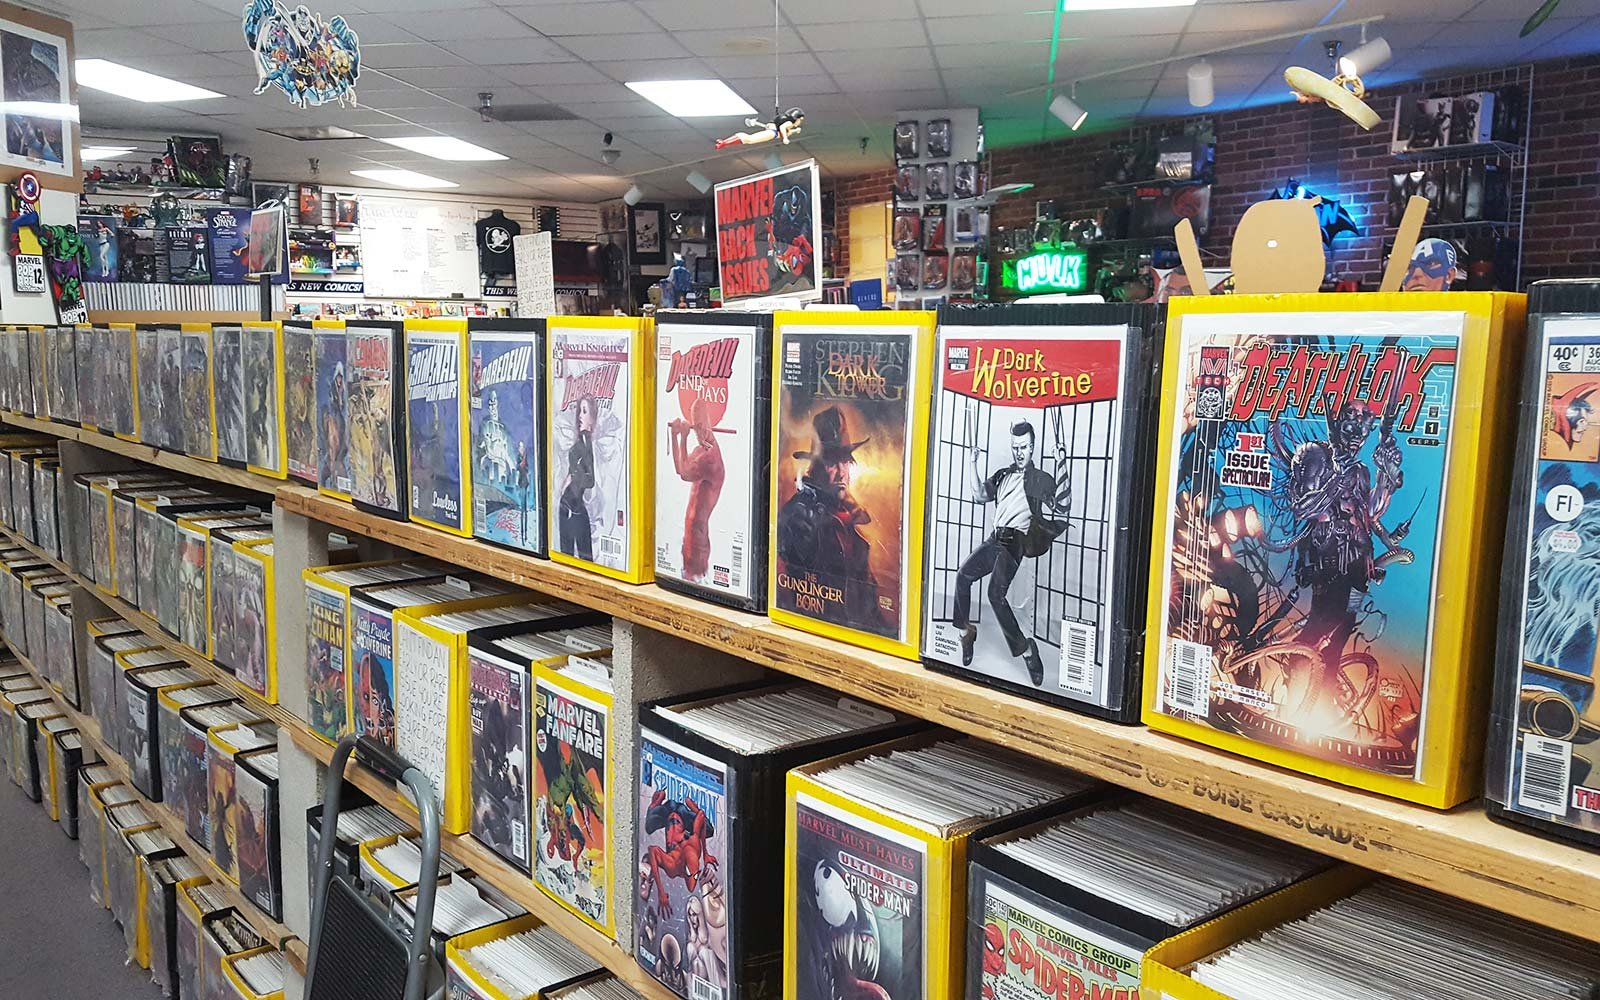 Stylish Sale Racks Comic Book Shelves Travel Leisure Comic Book Shelves Cards Boulder California Comic Book Stores Time Warp Comics interior Comic Book Shelves